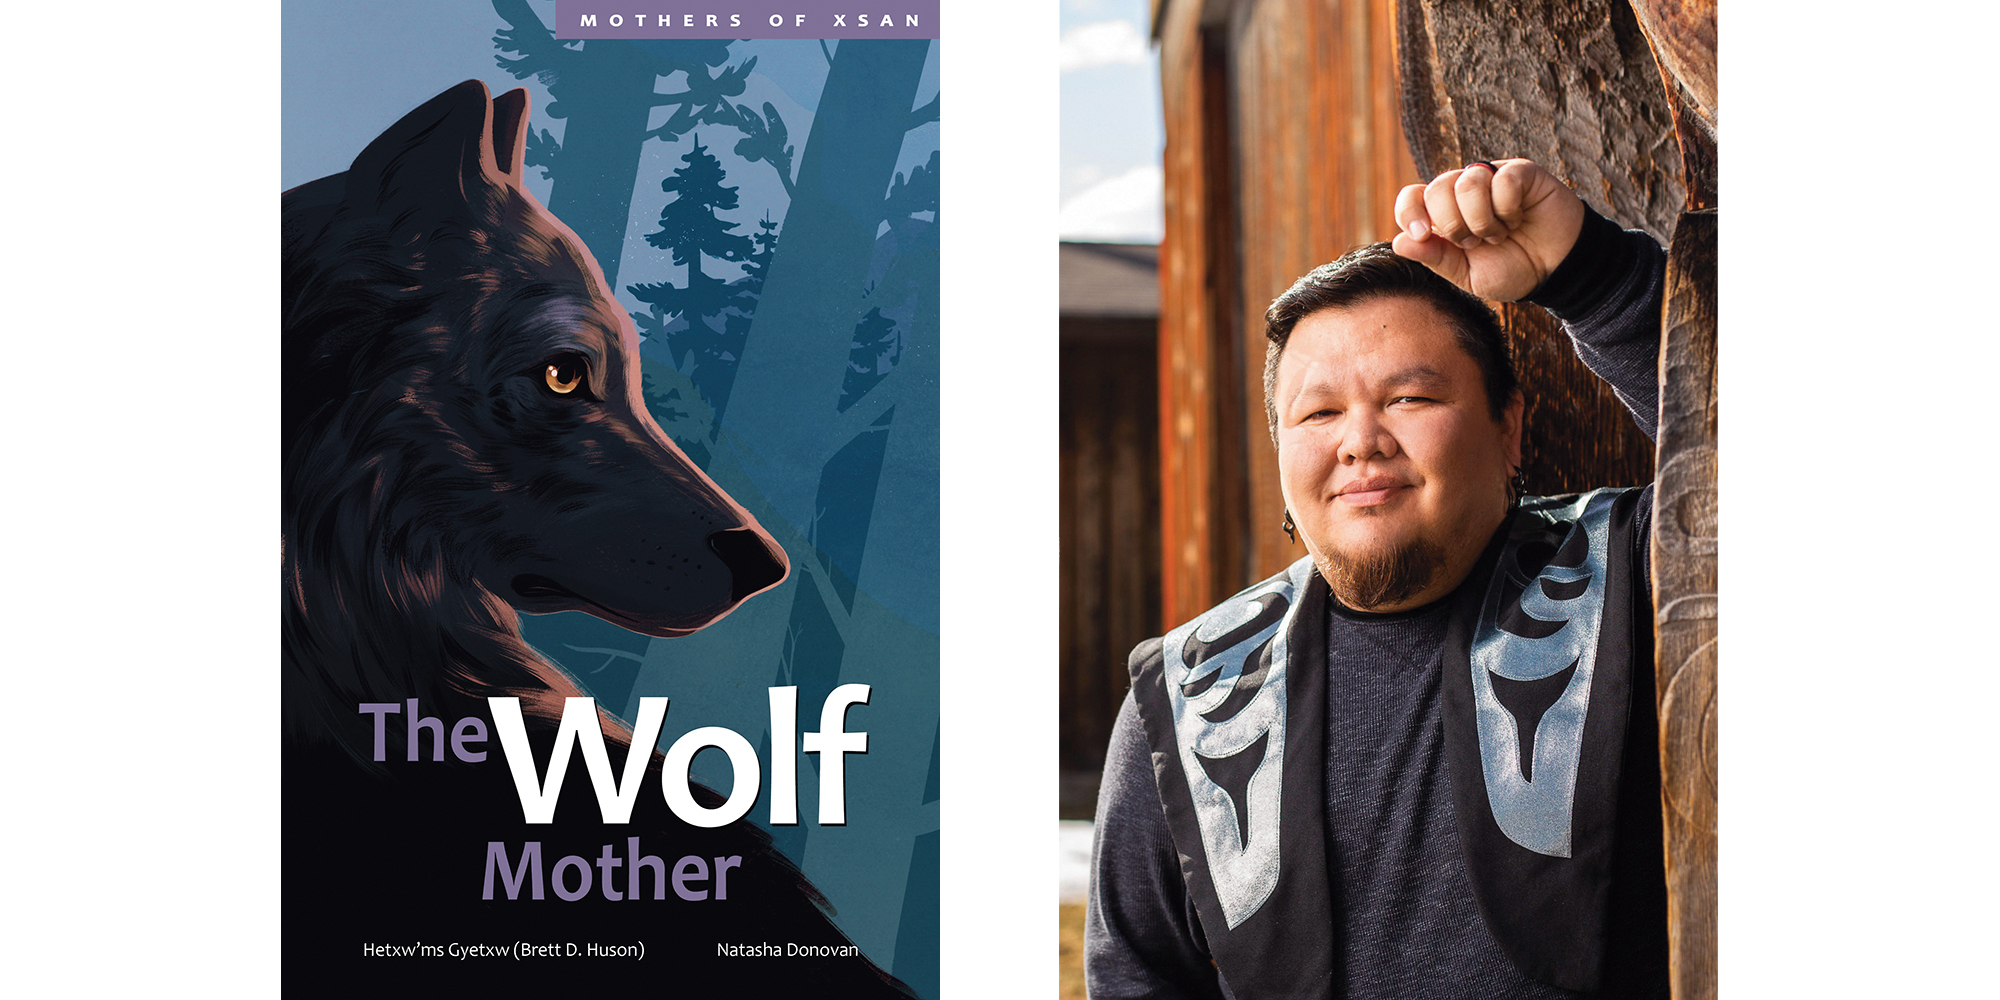 The cover of Hetxwms Gyetxw (Brett D. Huson) and illustrator Natasha Donovan's Wolf Mother with a photo of the author